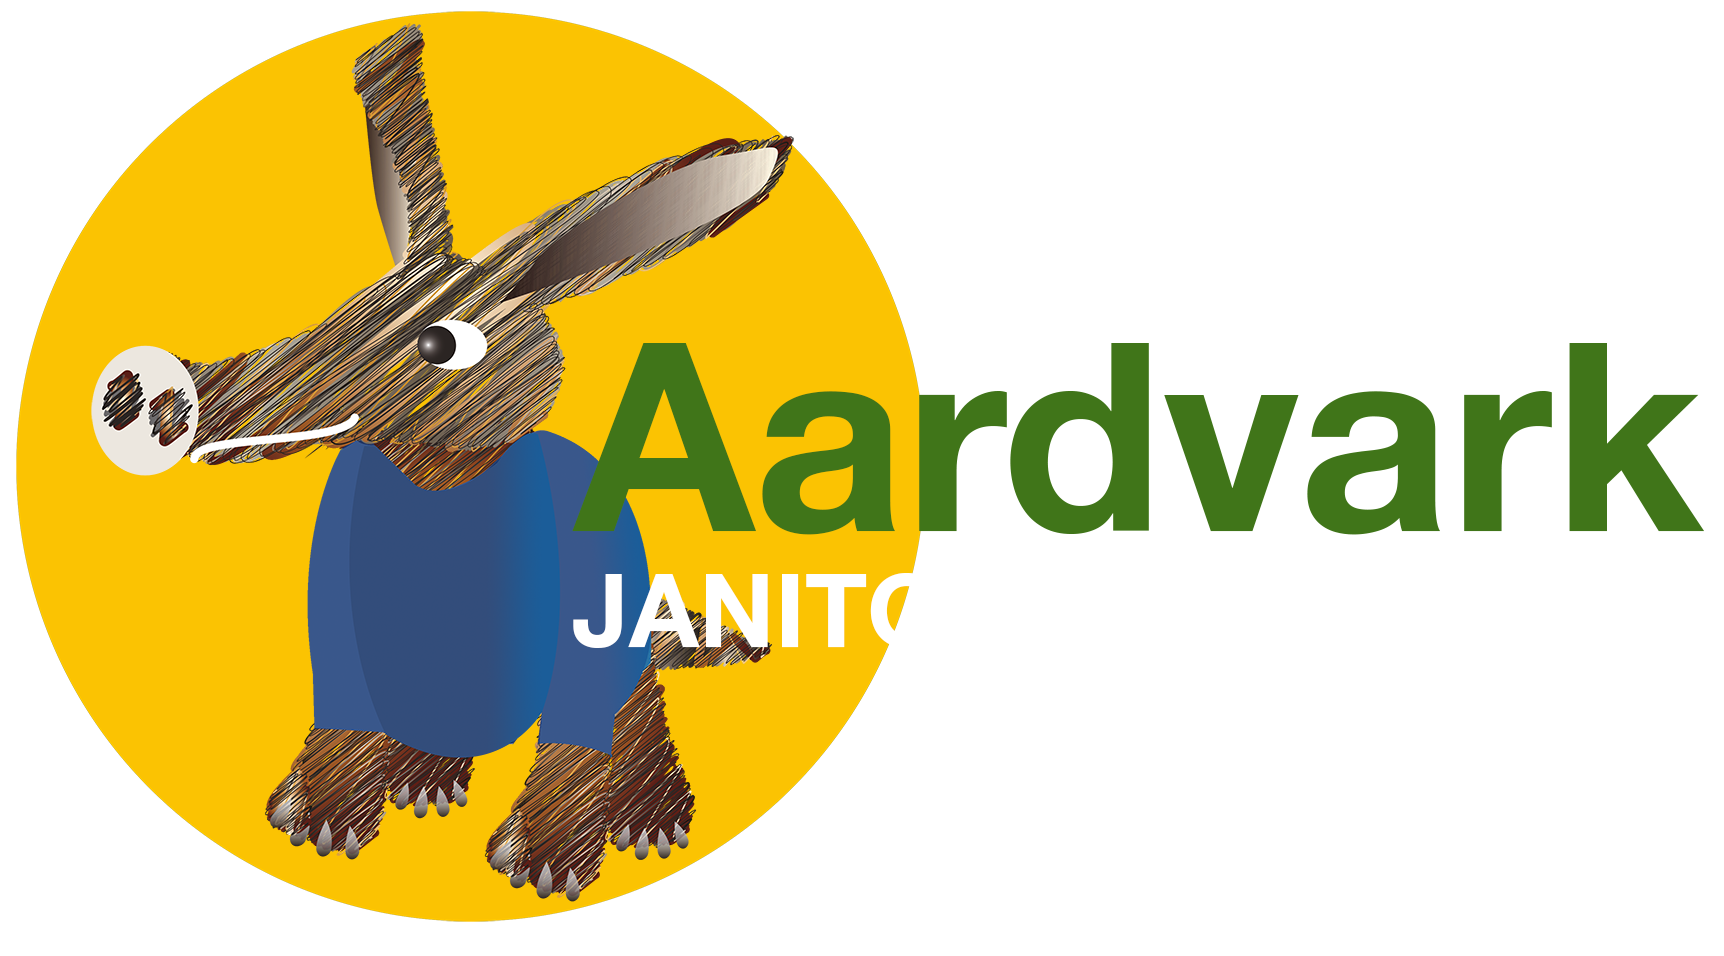 Aardvark Janitorial Supplies